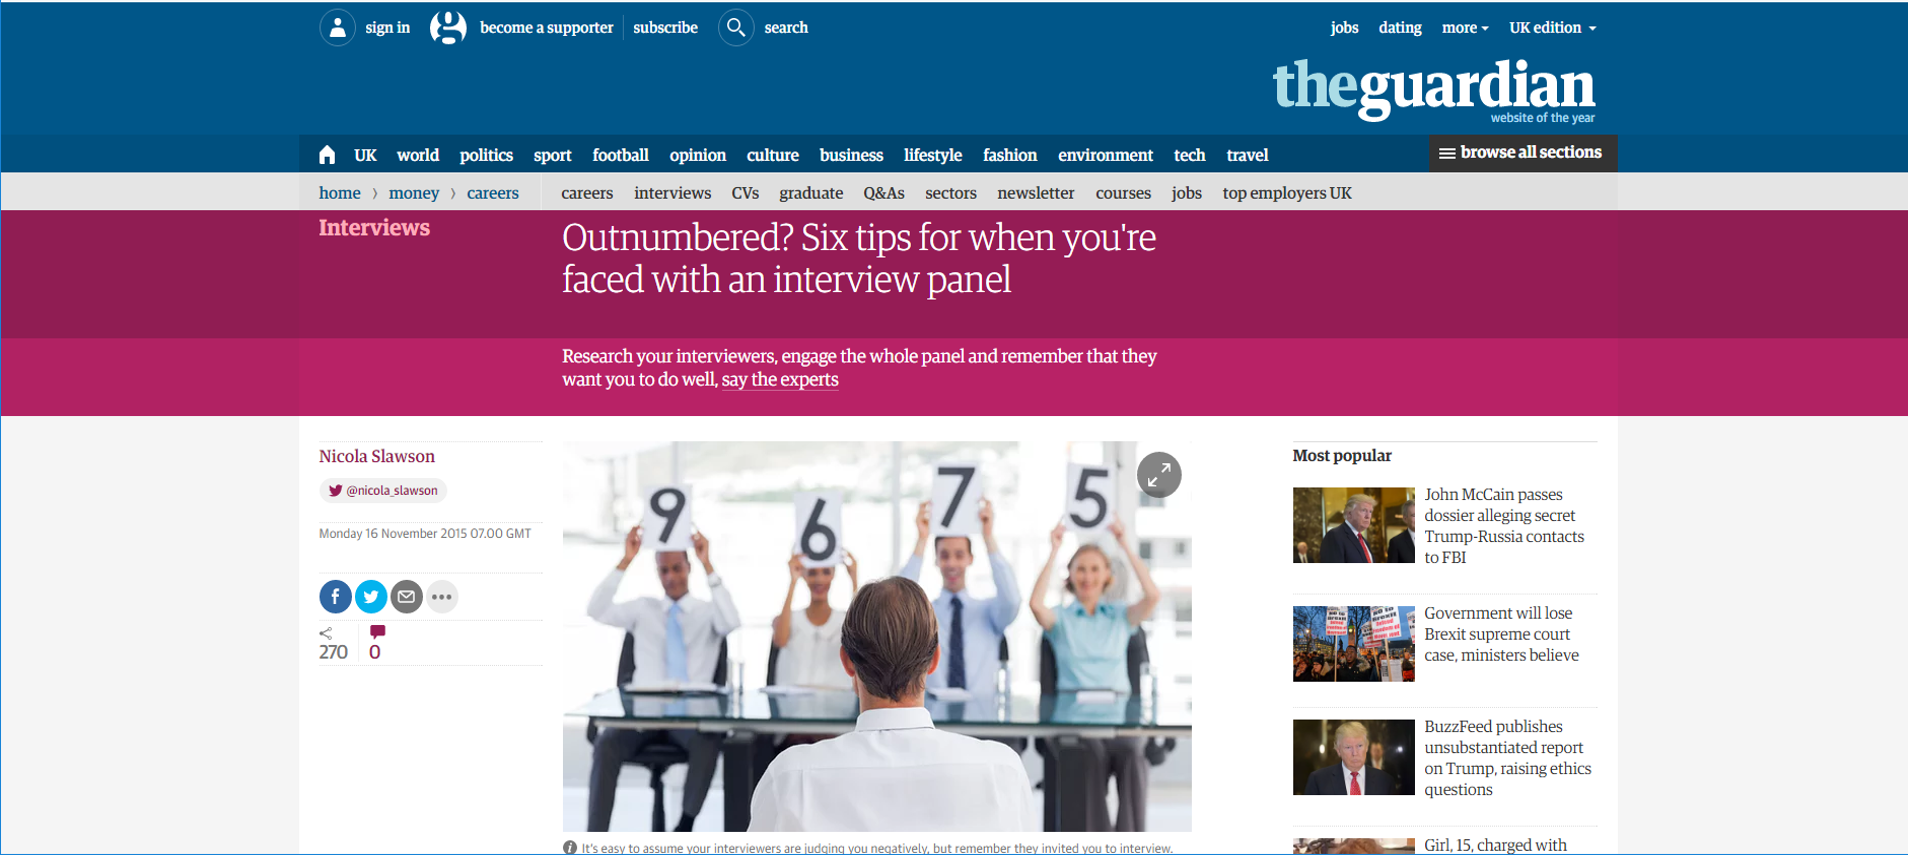 6 Tips for when you're faced with an interview panel